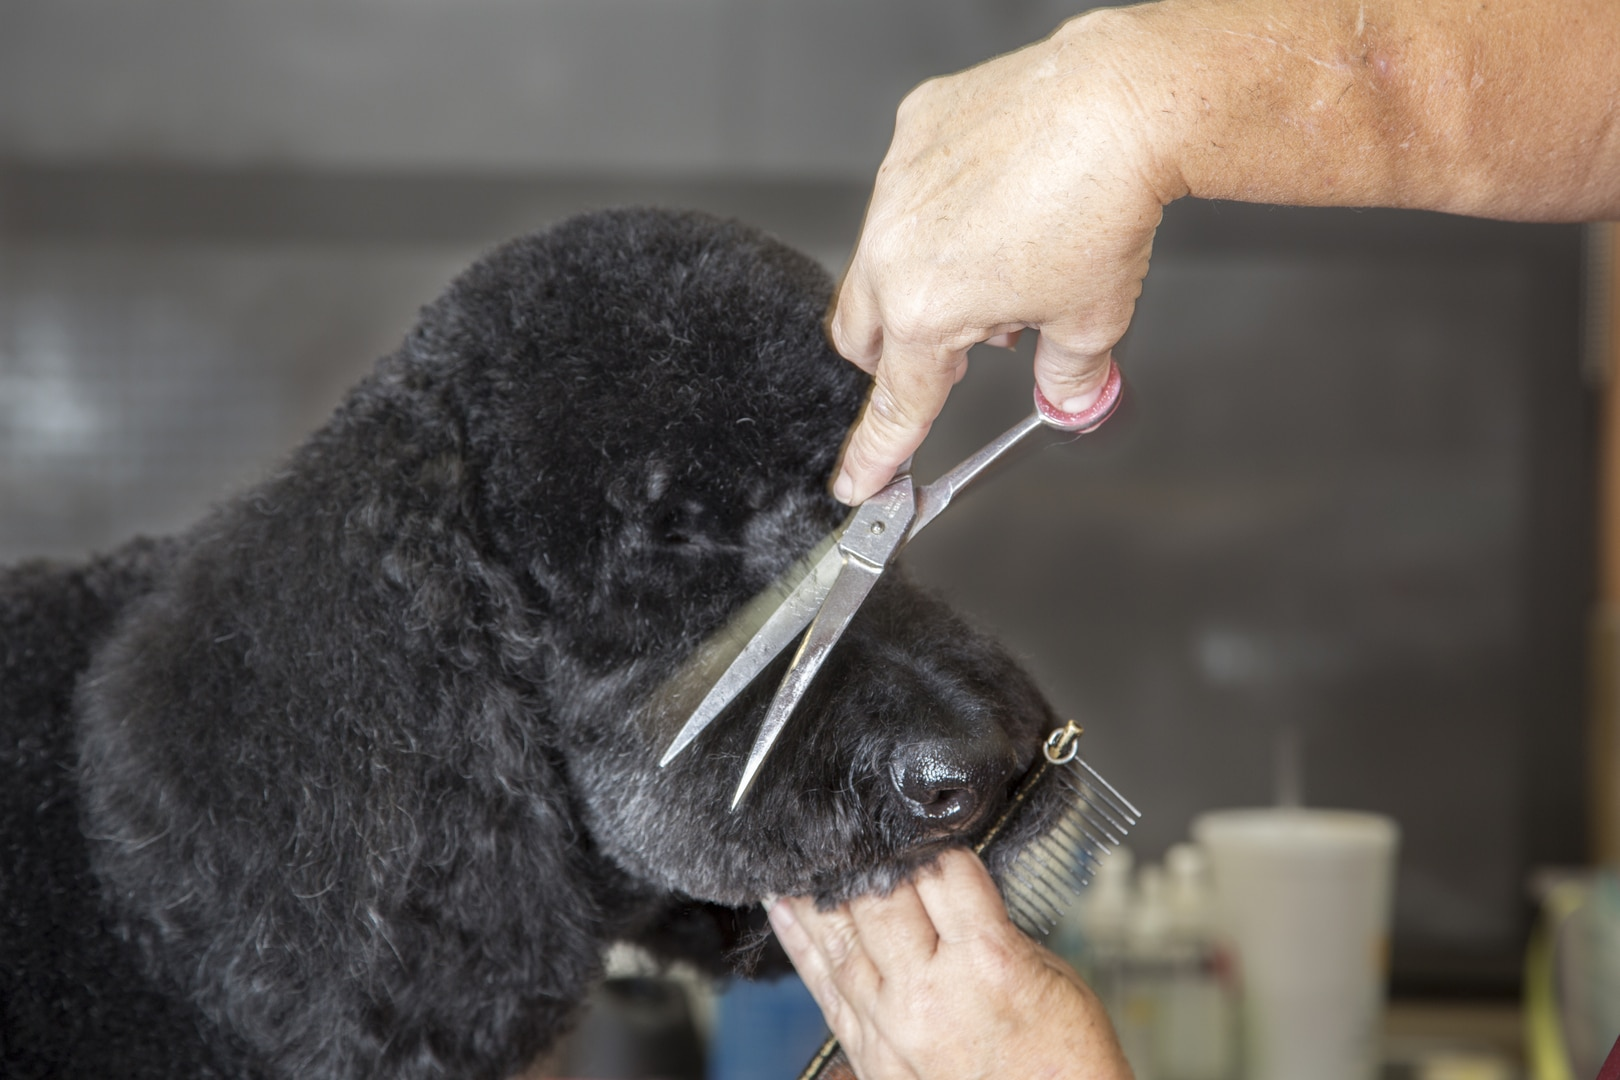 Grooming a Black Dog Close Up